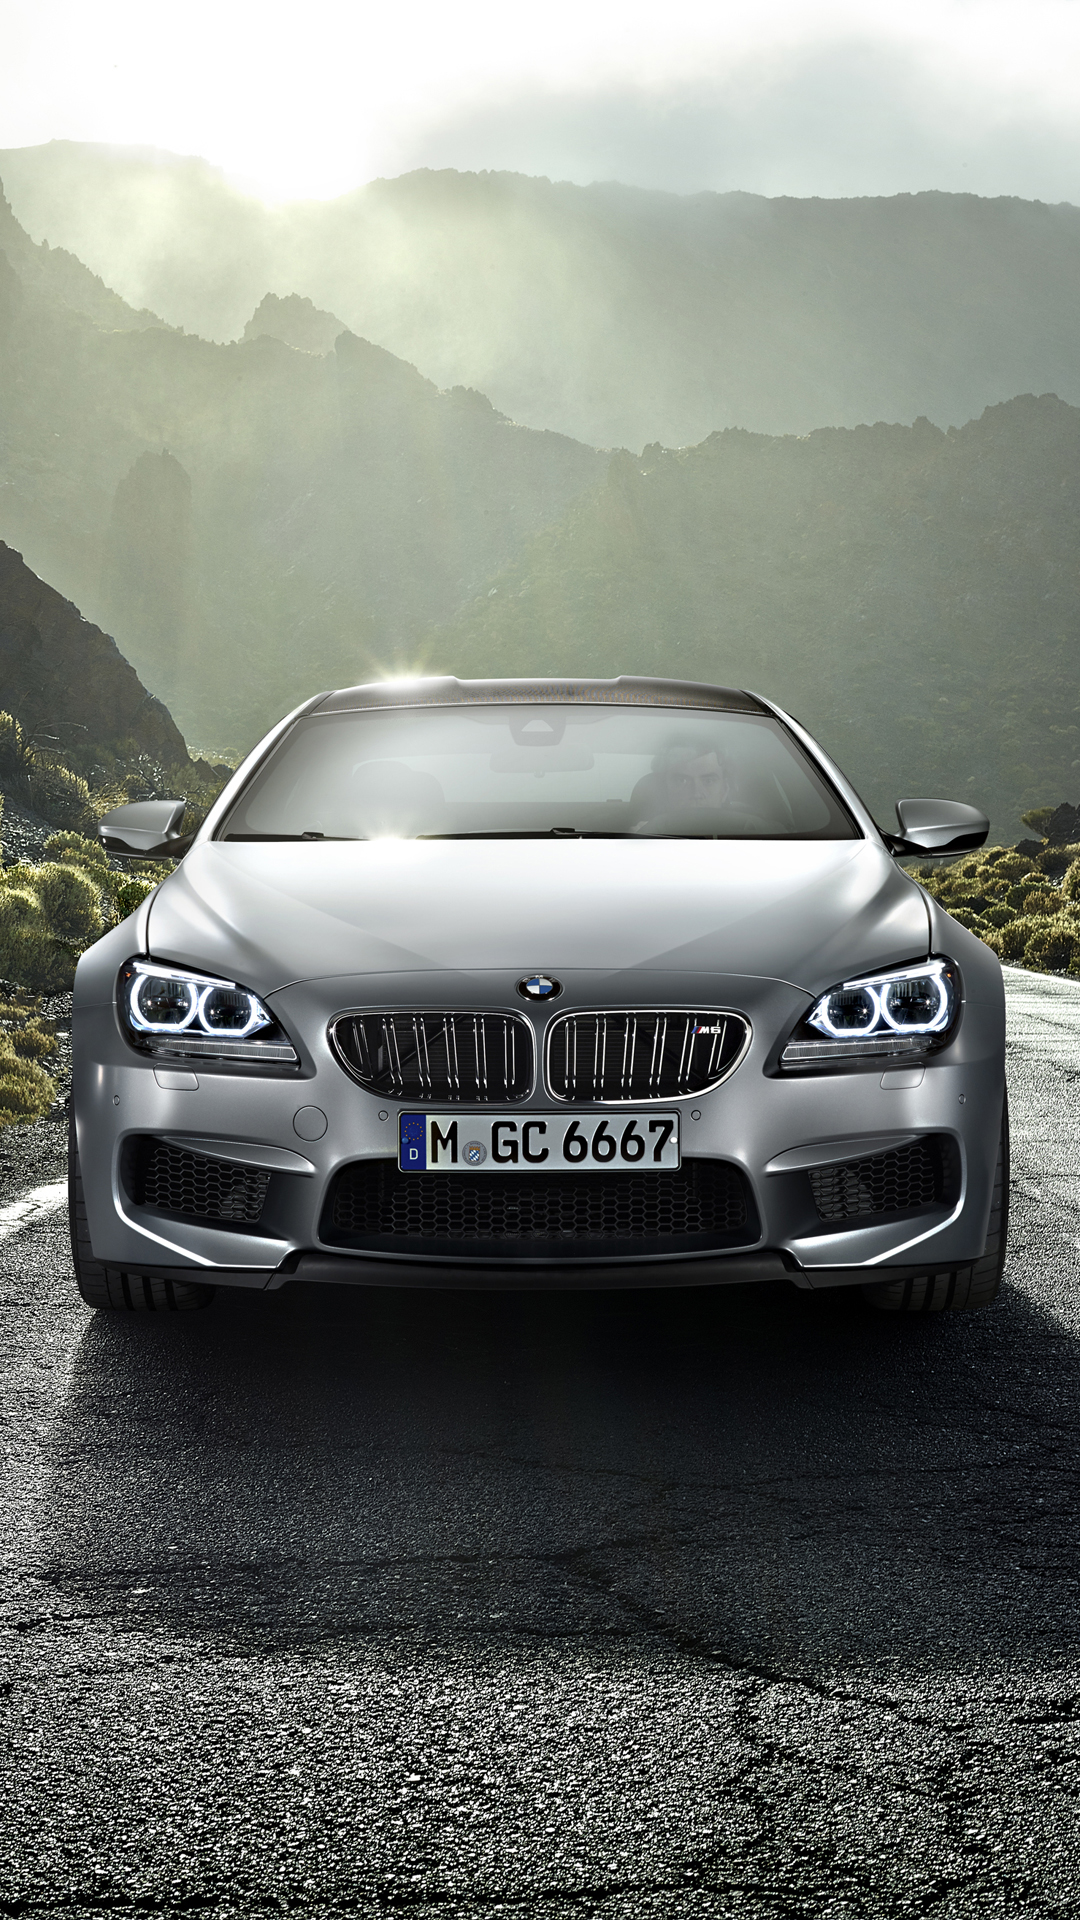 BMW M6 htc one wallpaper - Best htc one wallpapers